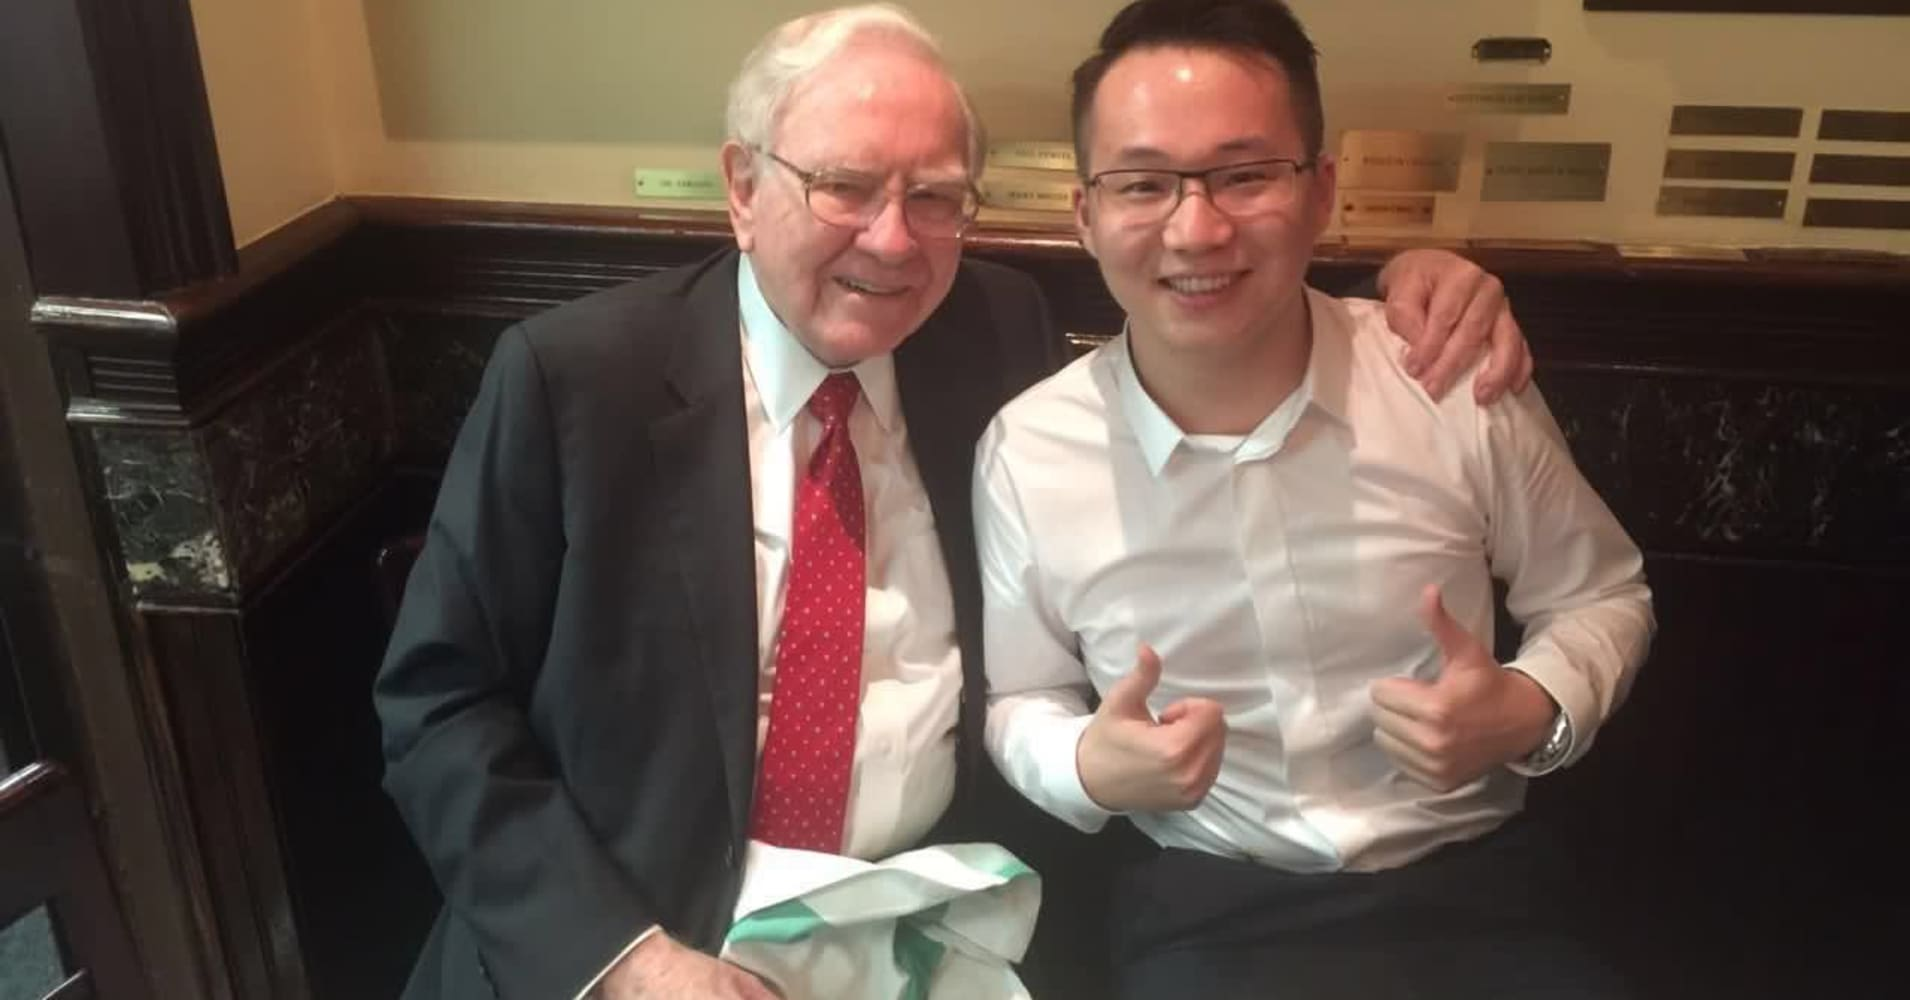 An entrepreneur won a lunch with Warren Buffett. Now he's looking to beat him with cryptocurrency